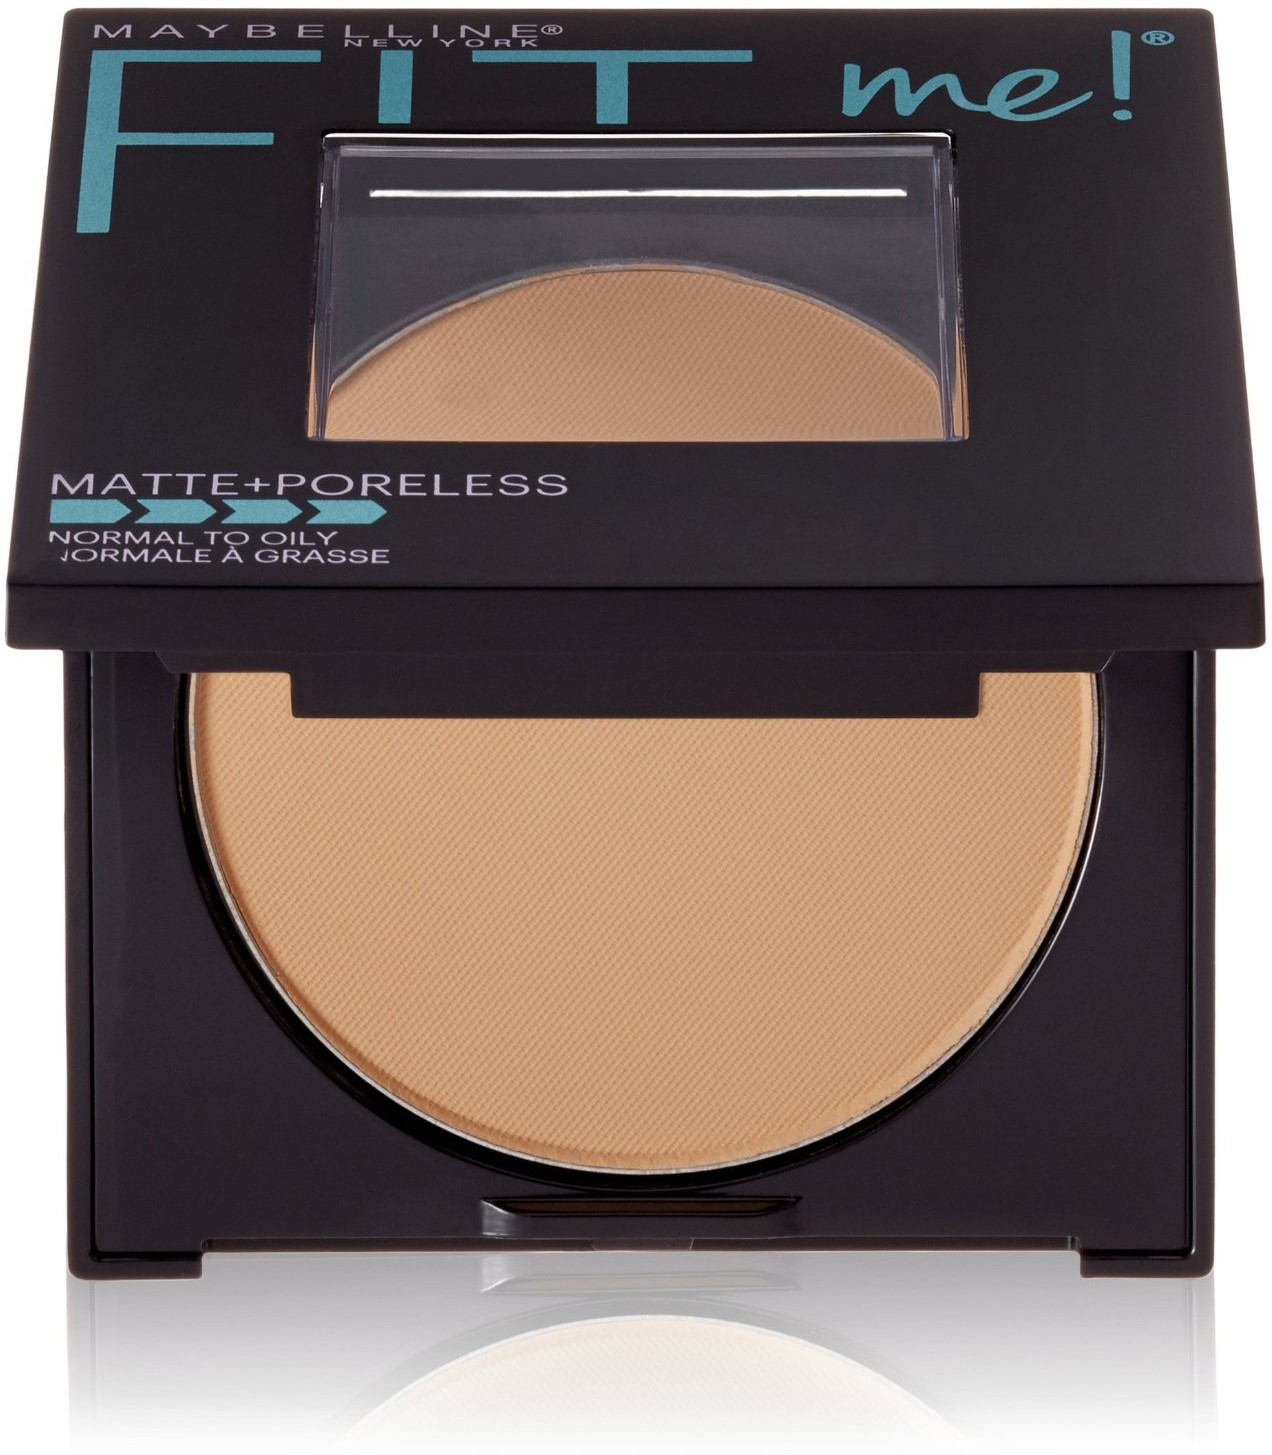 Home 187 schlafen amp bad 187 wellness pur - Maybelline New York Fit Me Matte Poreless Foundation Powder 100 Translucent 8 5 G 100 Translucent Walmart Com